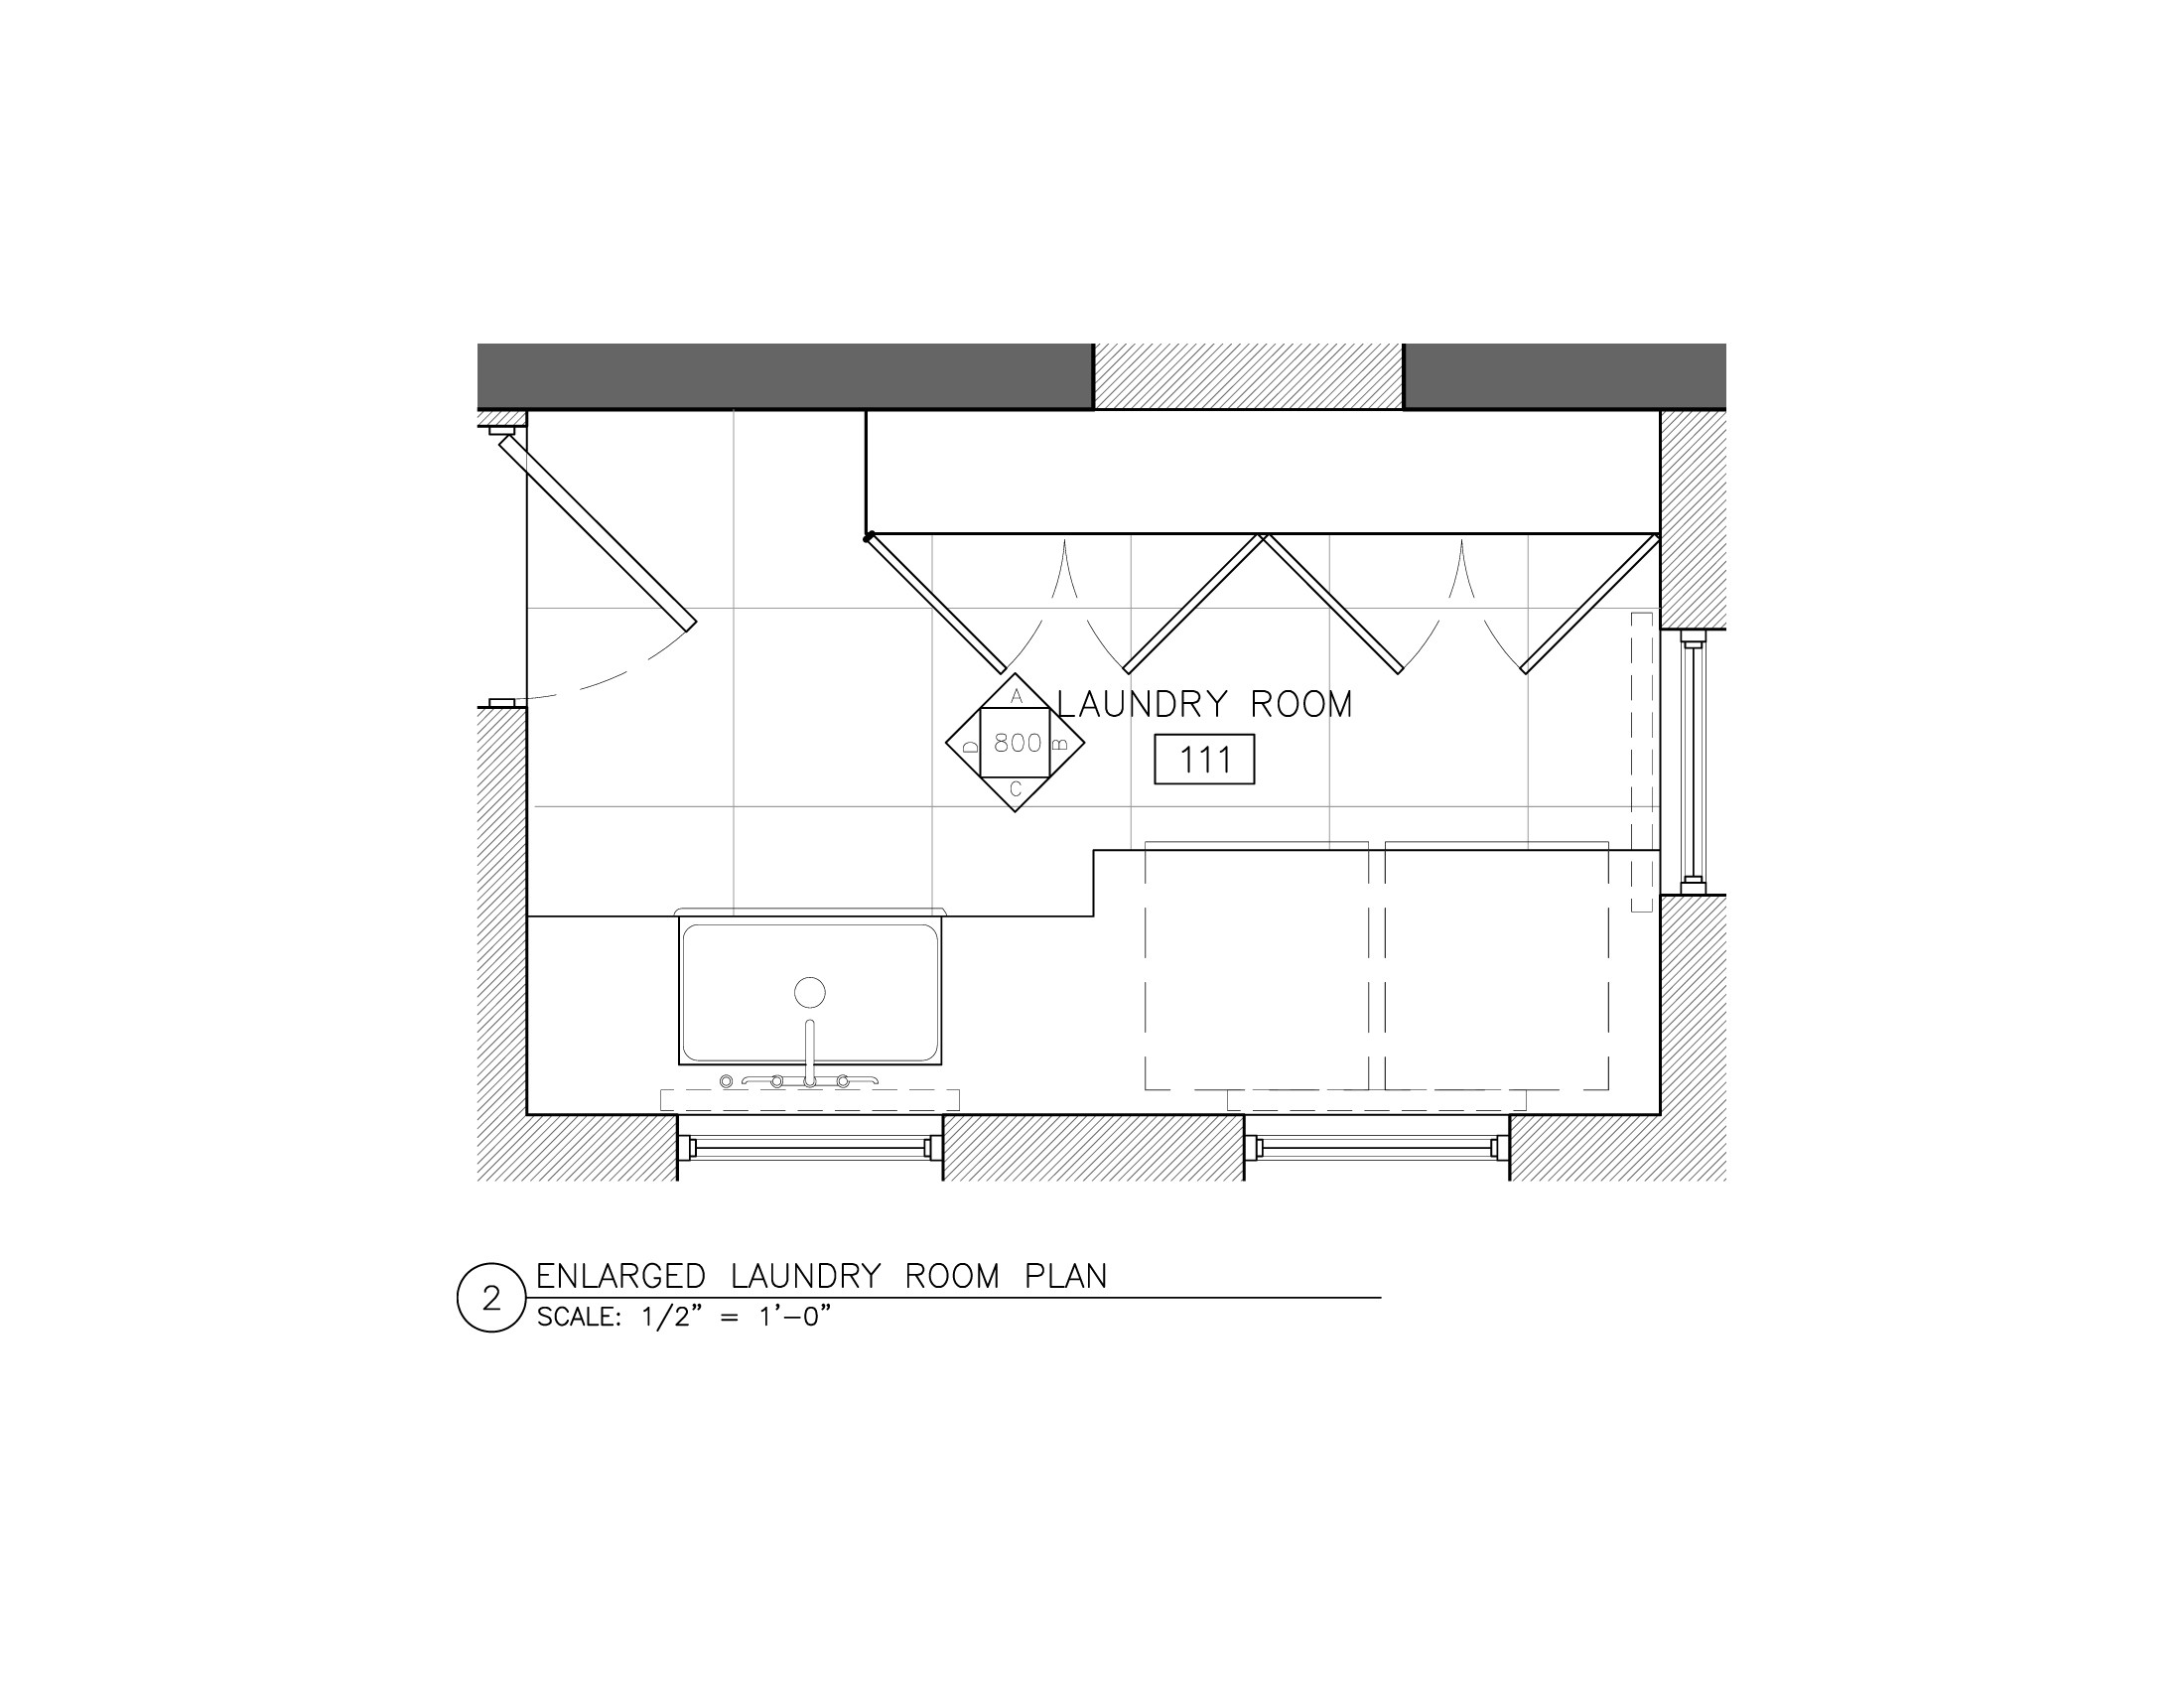 Best ideas about Laundry Room Floor Plans . Save or Pin Behind The Scenes Bathroom Battles Now.